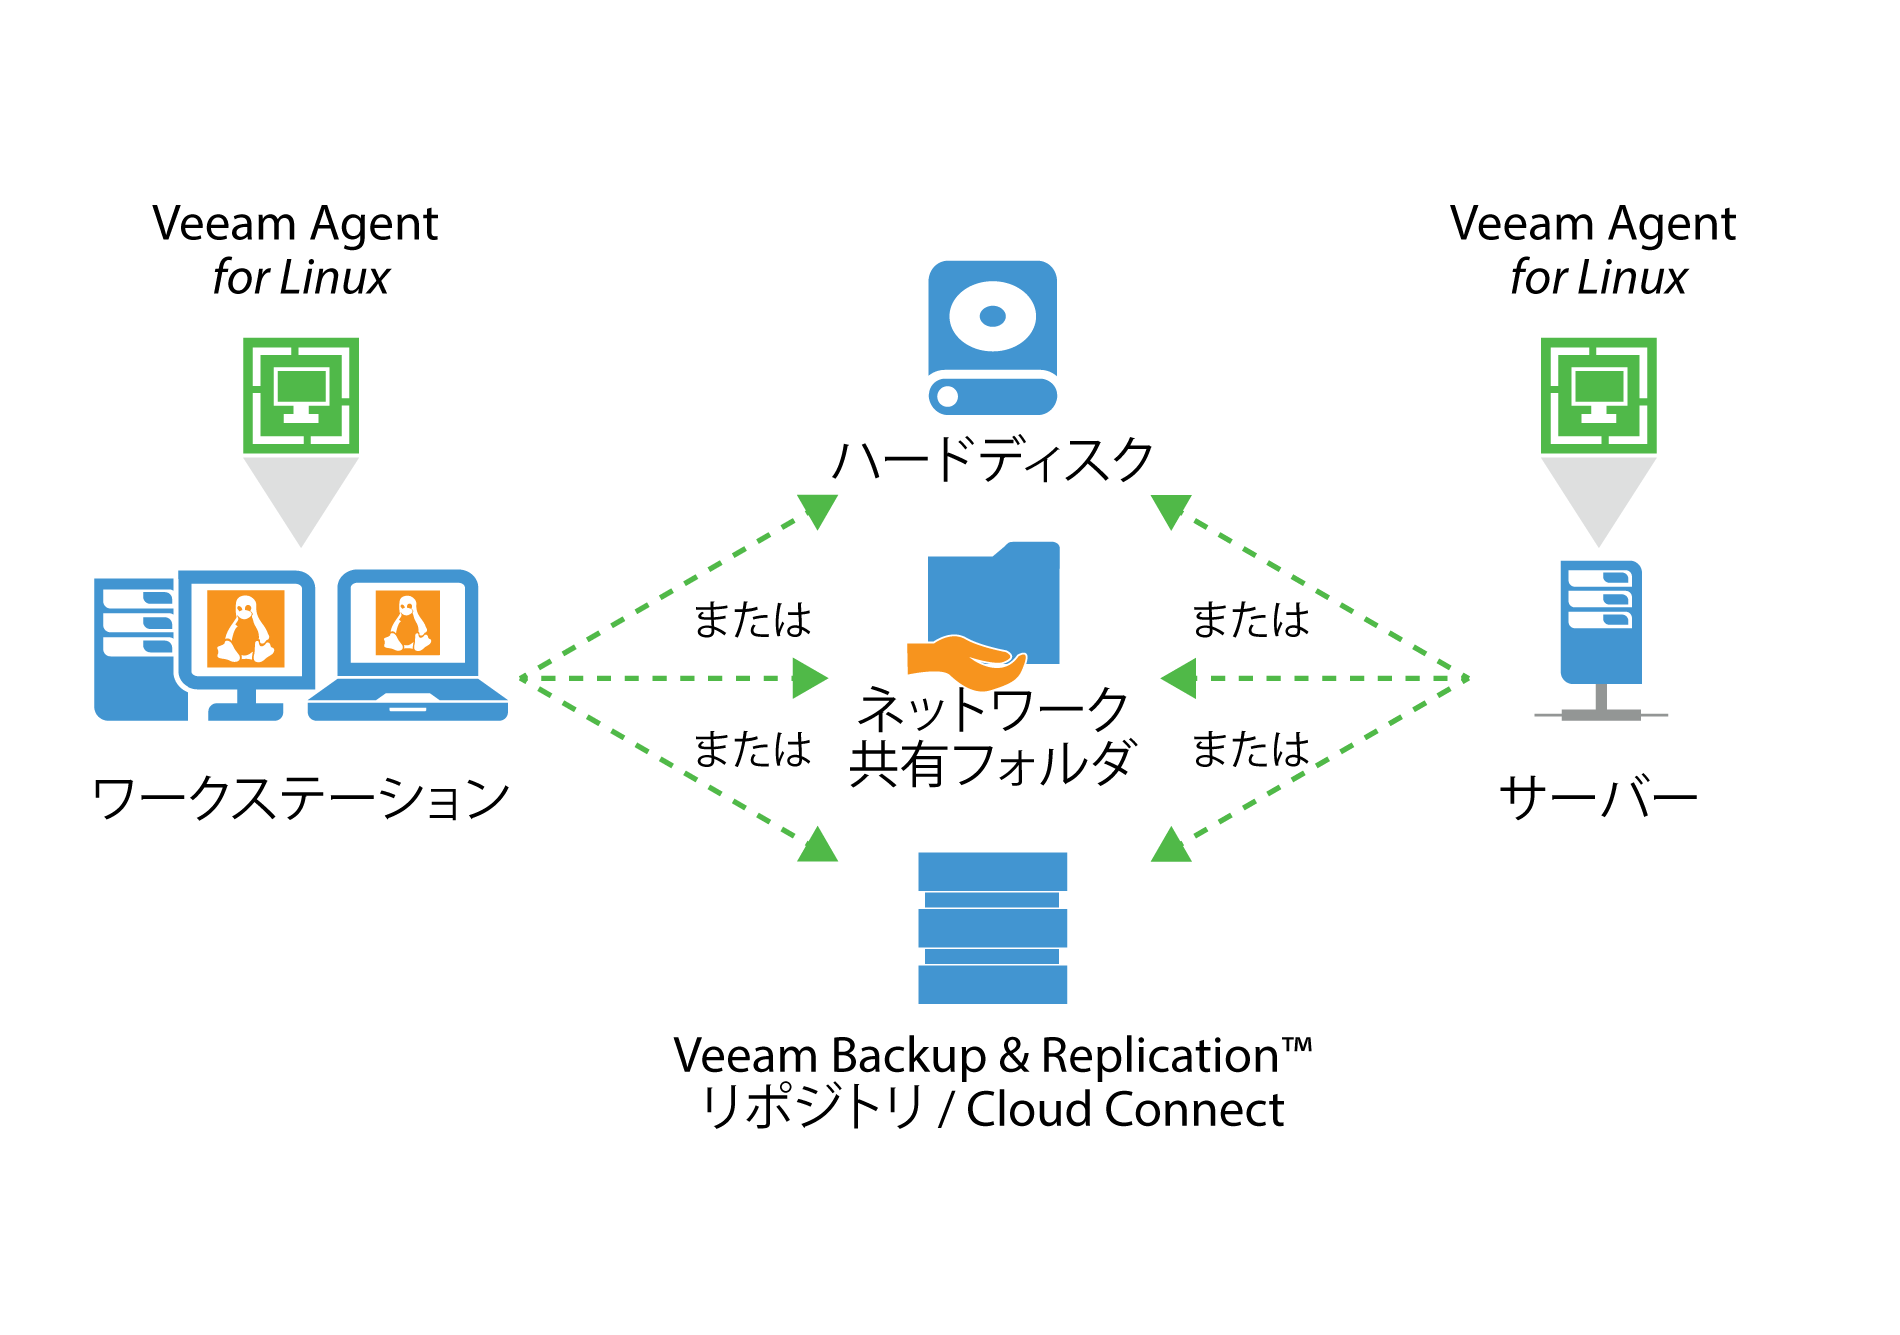 veeam_endpoint_how_it_works_for_linux_jp.png